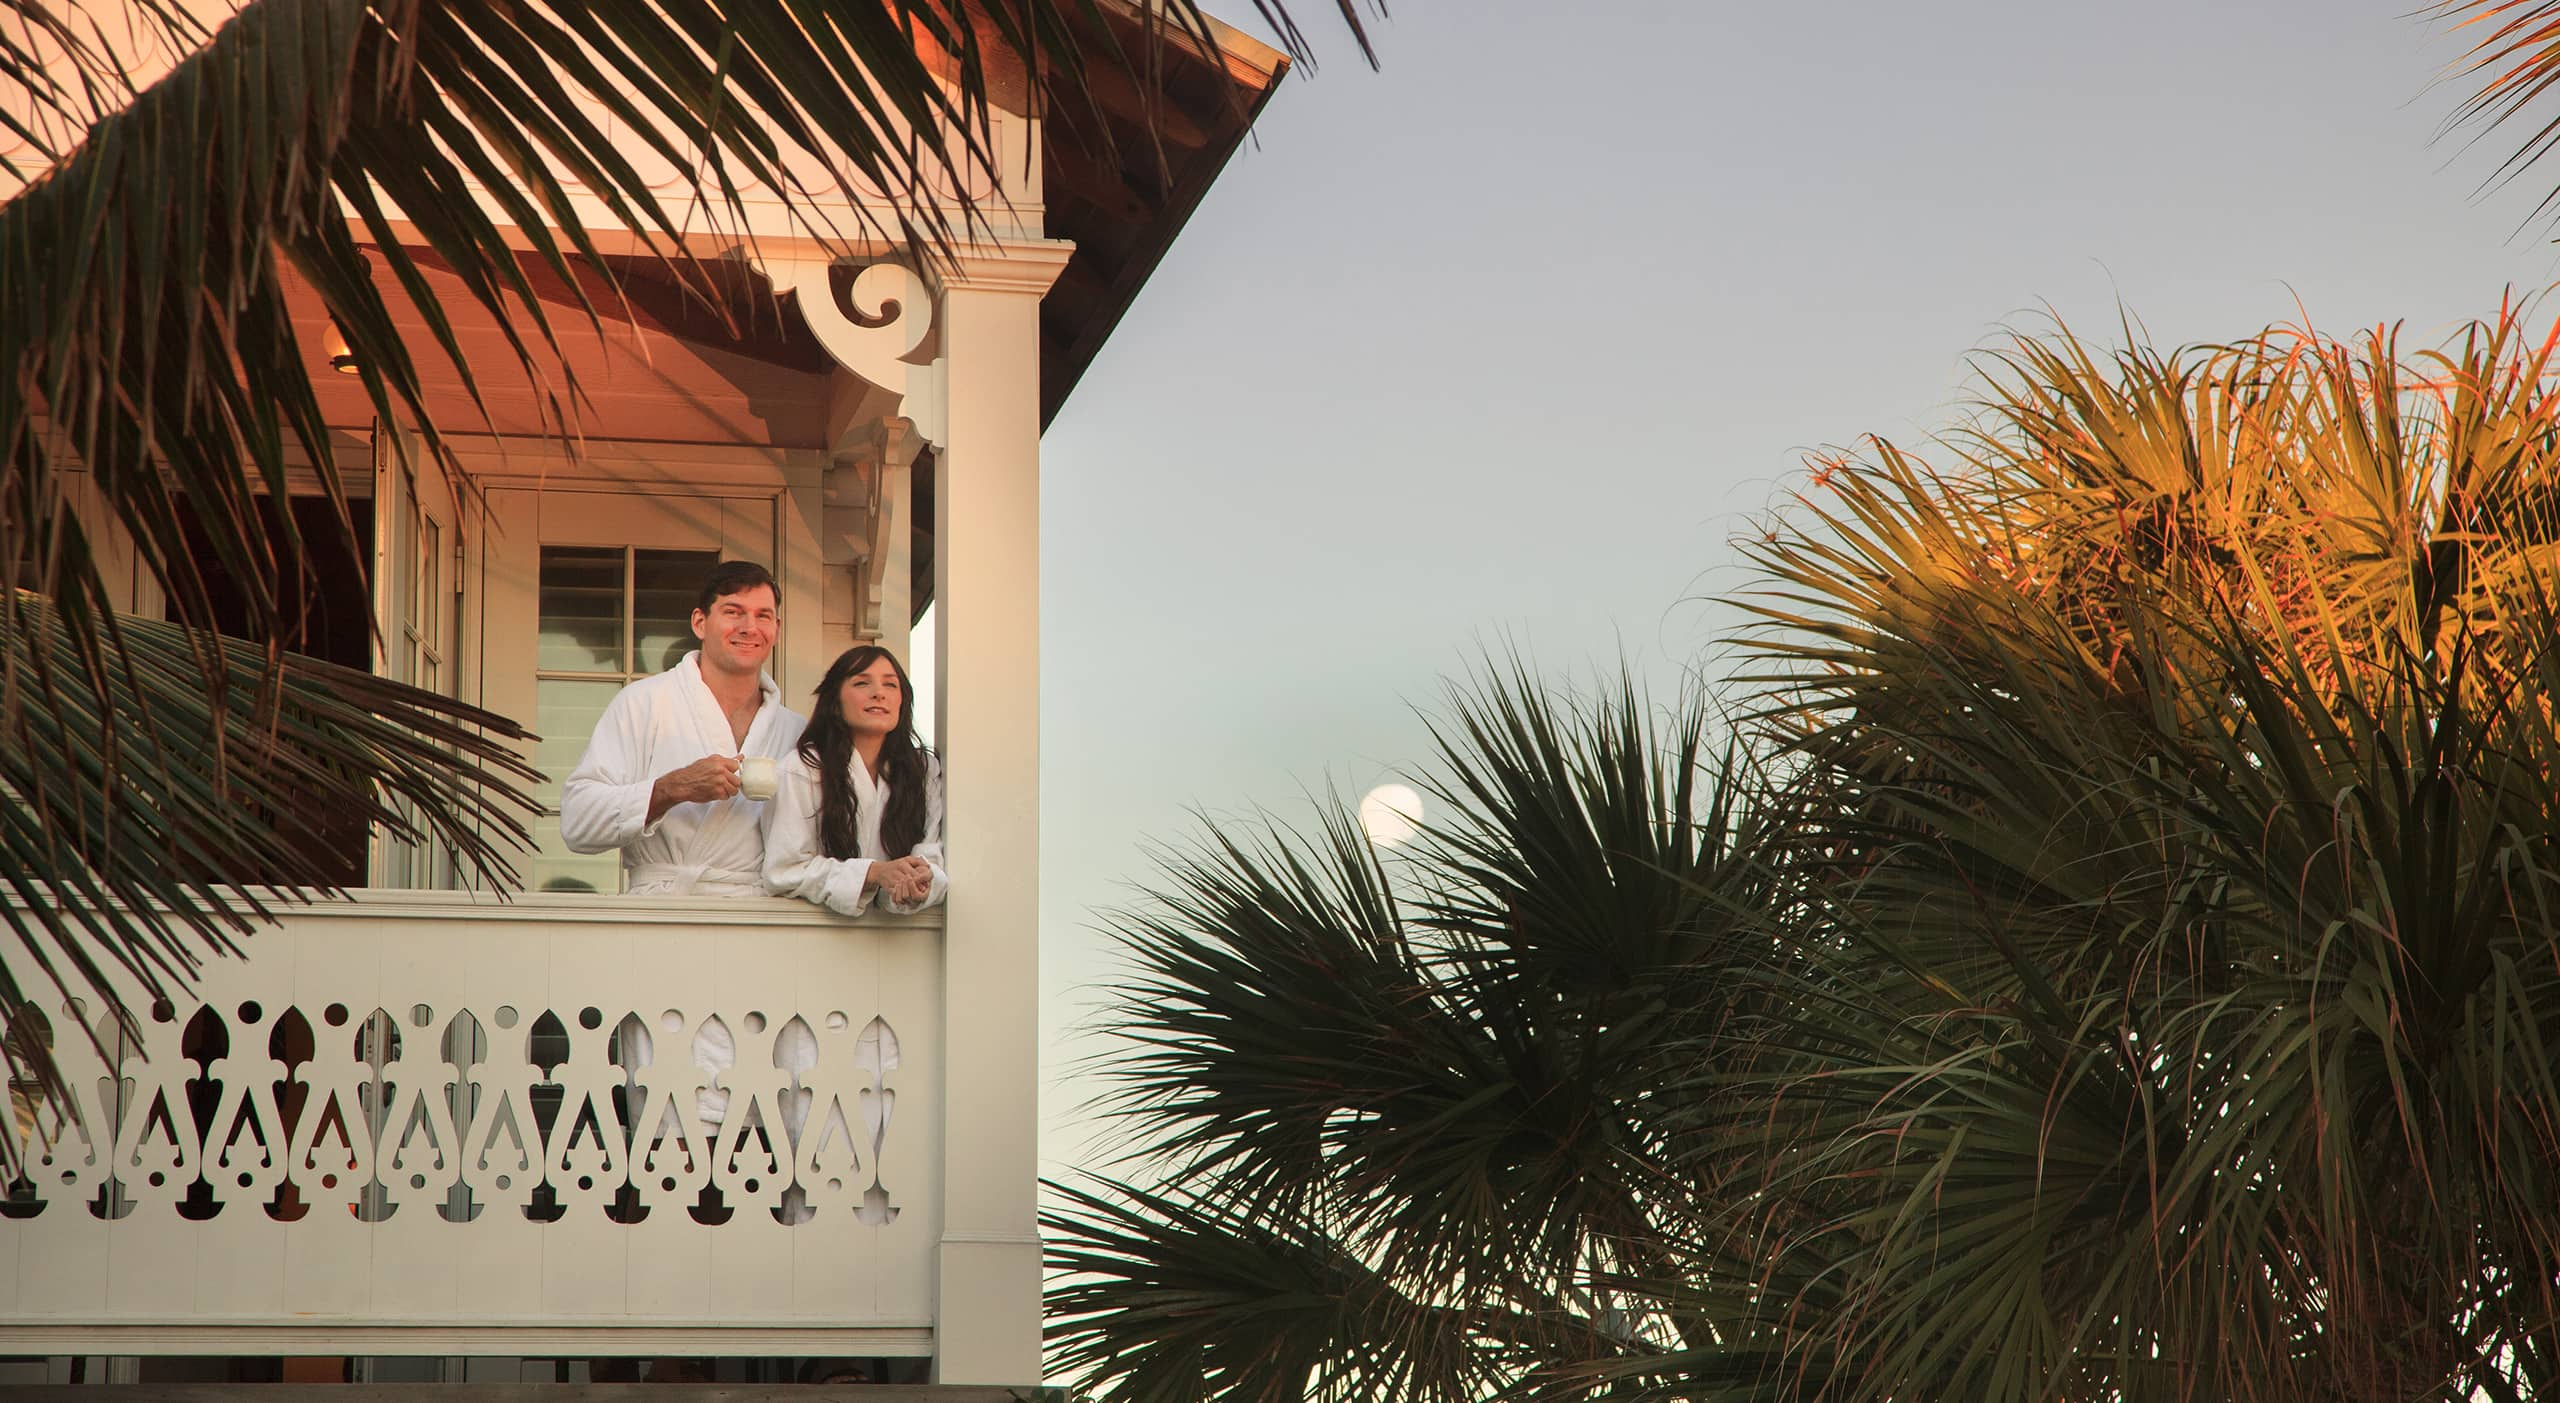 Couple with coffee on balcony at sunrise